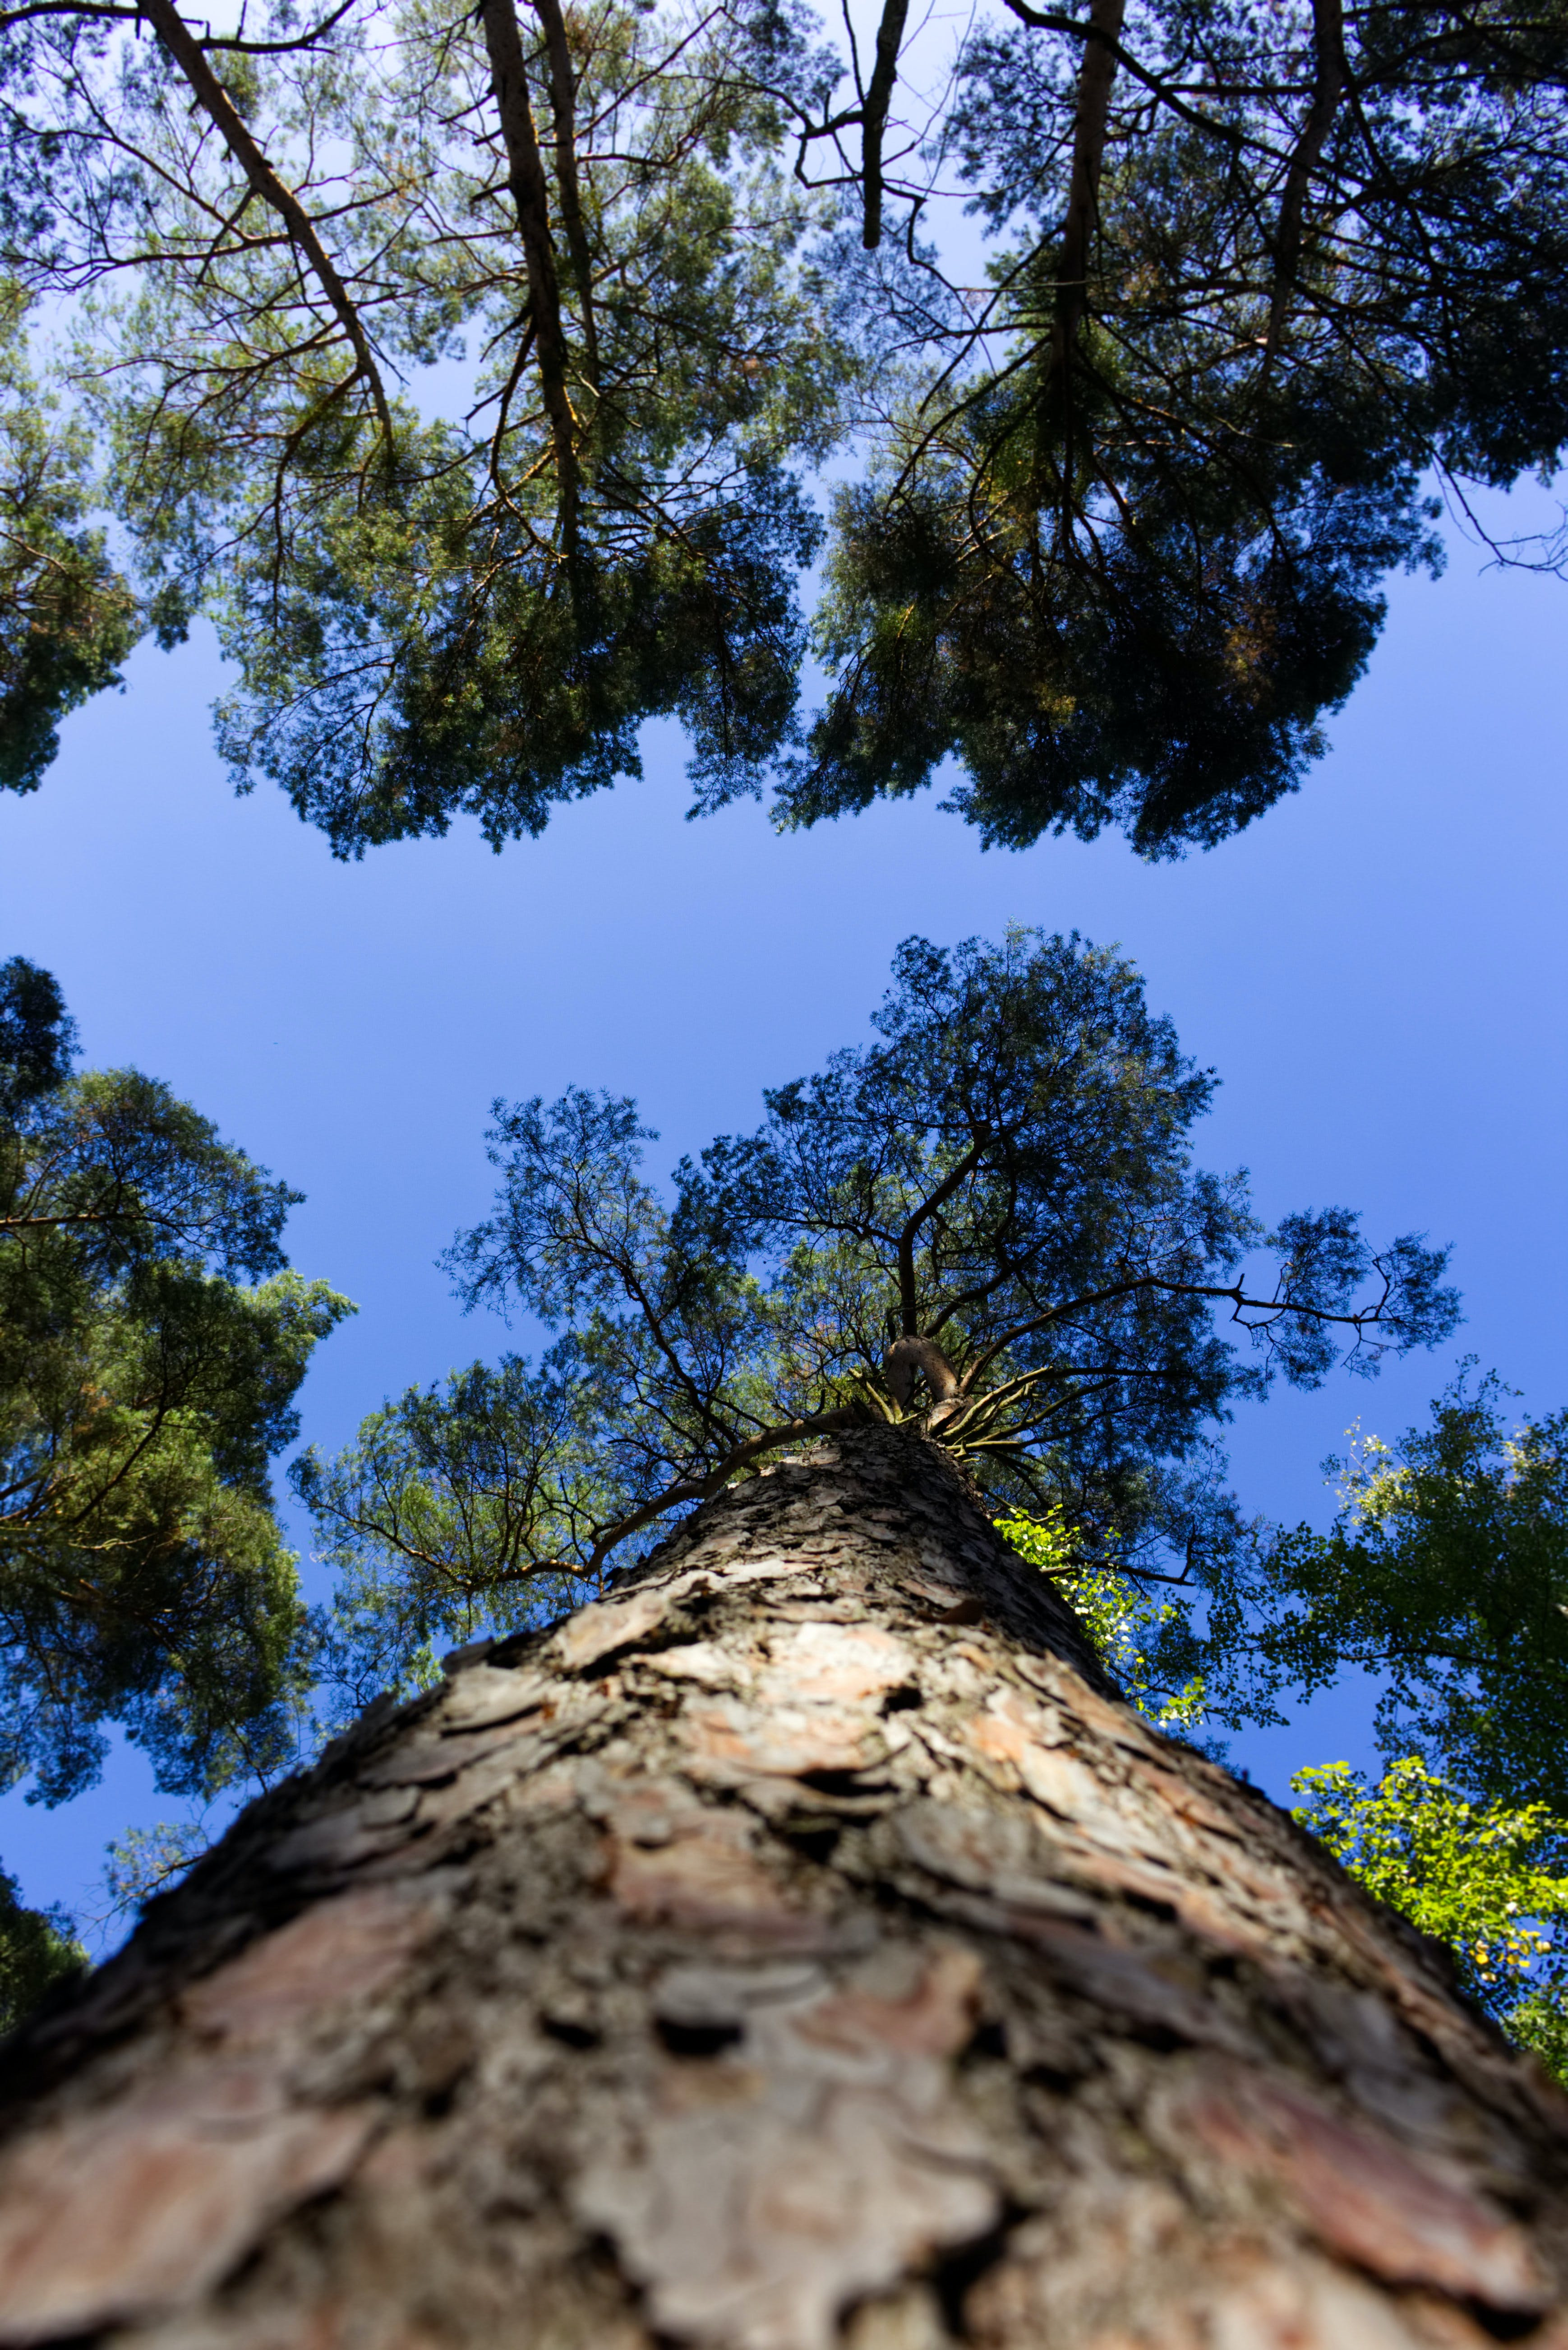 Free stock photo of abstract photo, blue sky, forest, tree